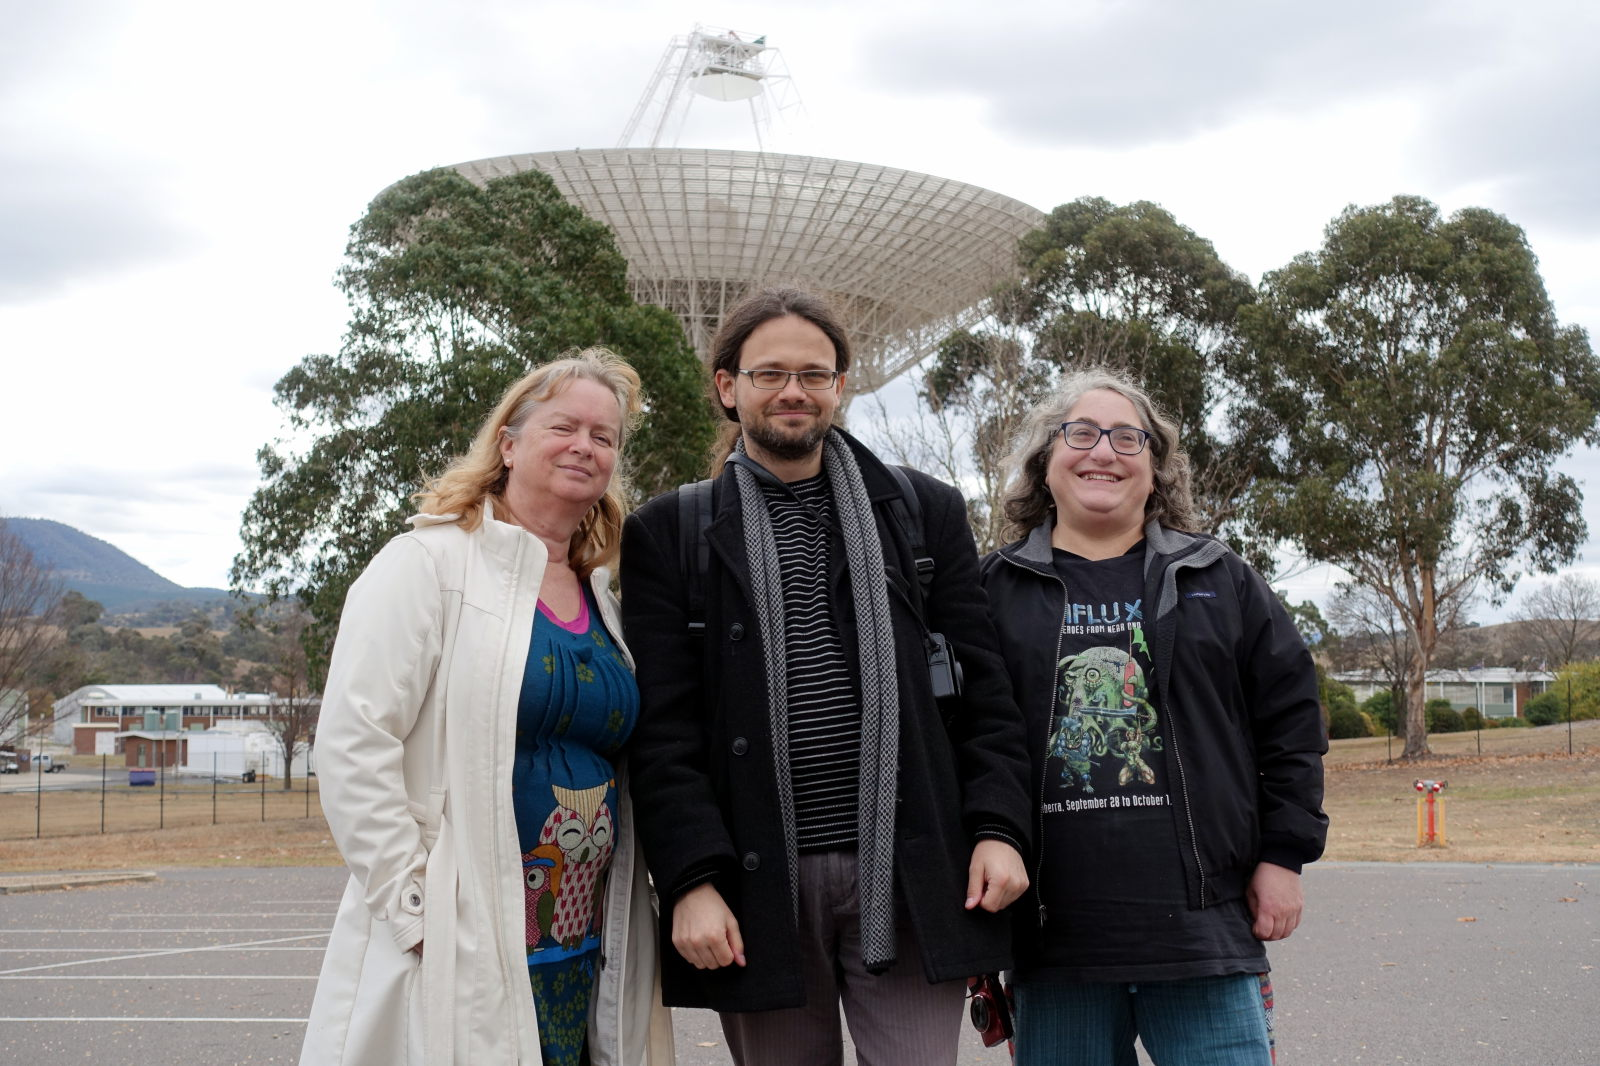 Three people in front of the radiotelescope